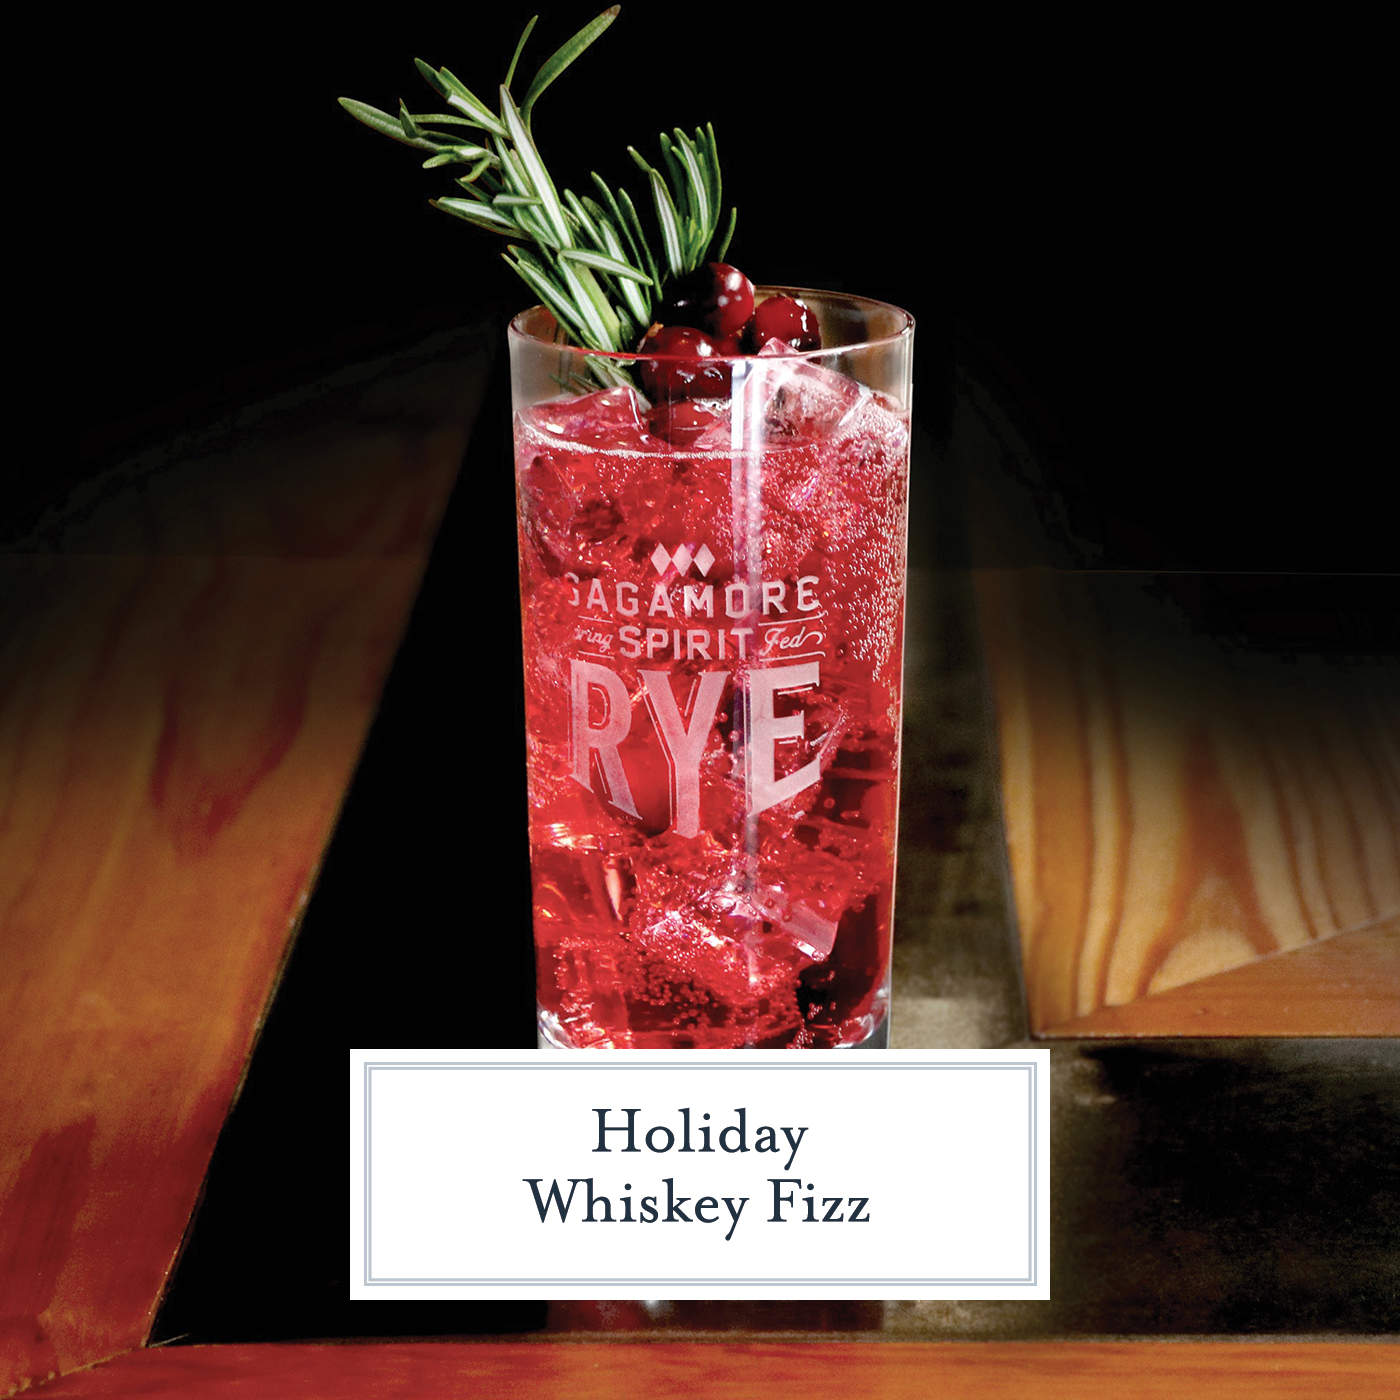 Holiday Whiskey Fizz is a bubbly holiday cocktail featuring Sagamore Spirits rye whiskey, club soda, cranberry syrup and lime juice. #whiskeycocktails #whiskey www.savoryexperiments.com